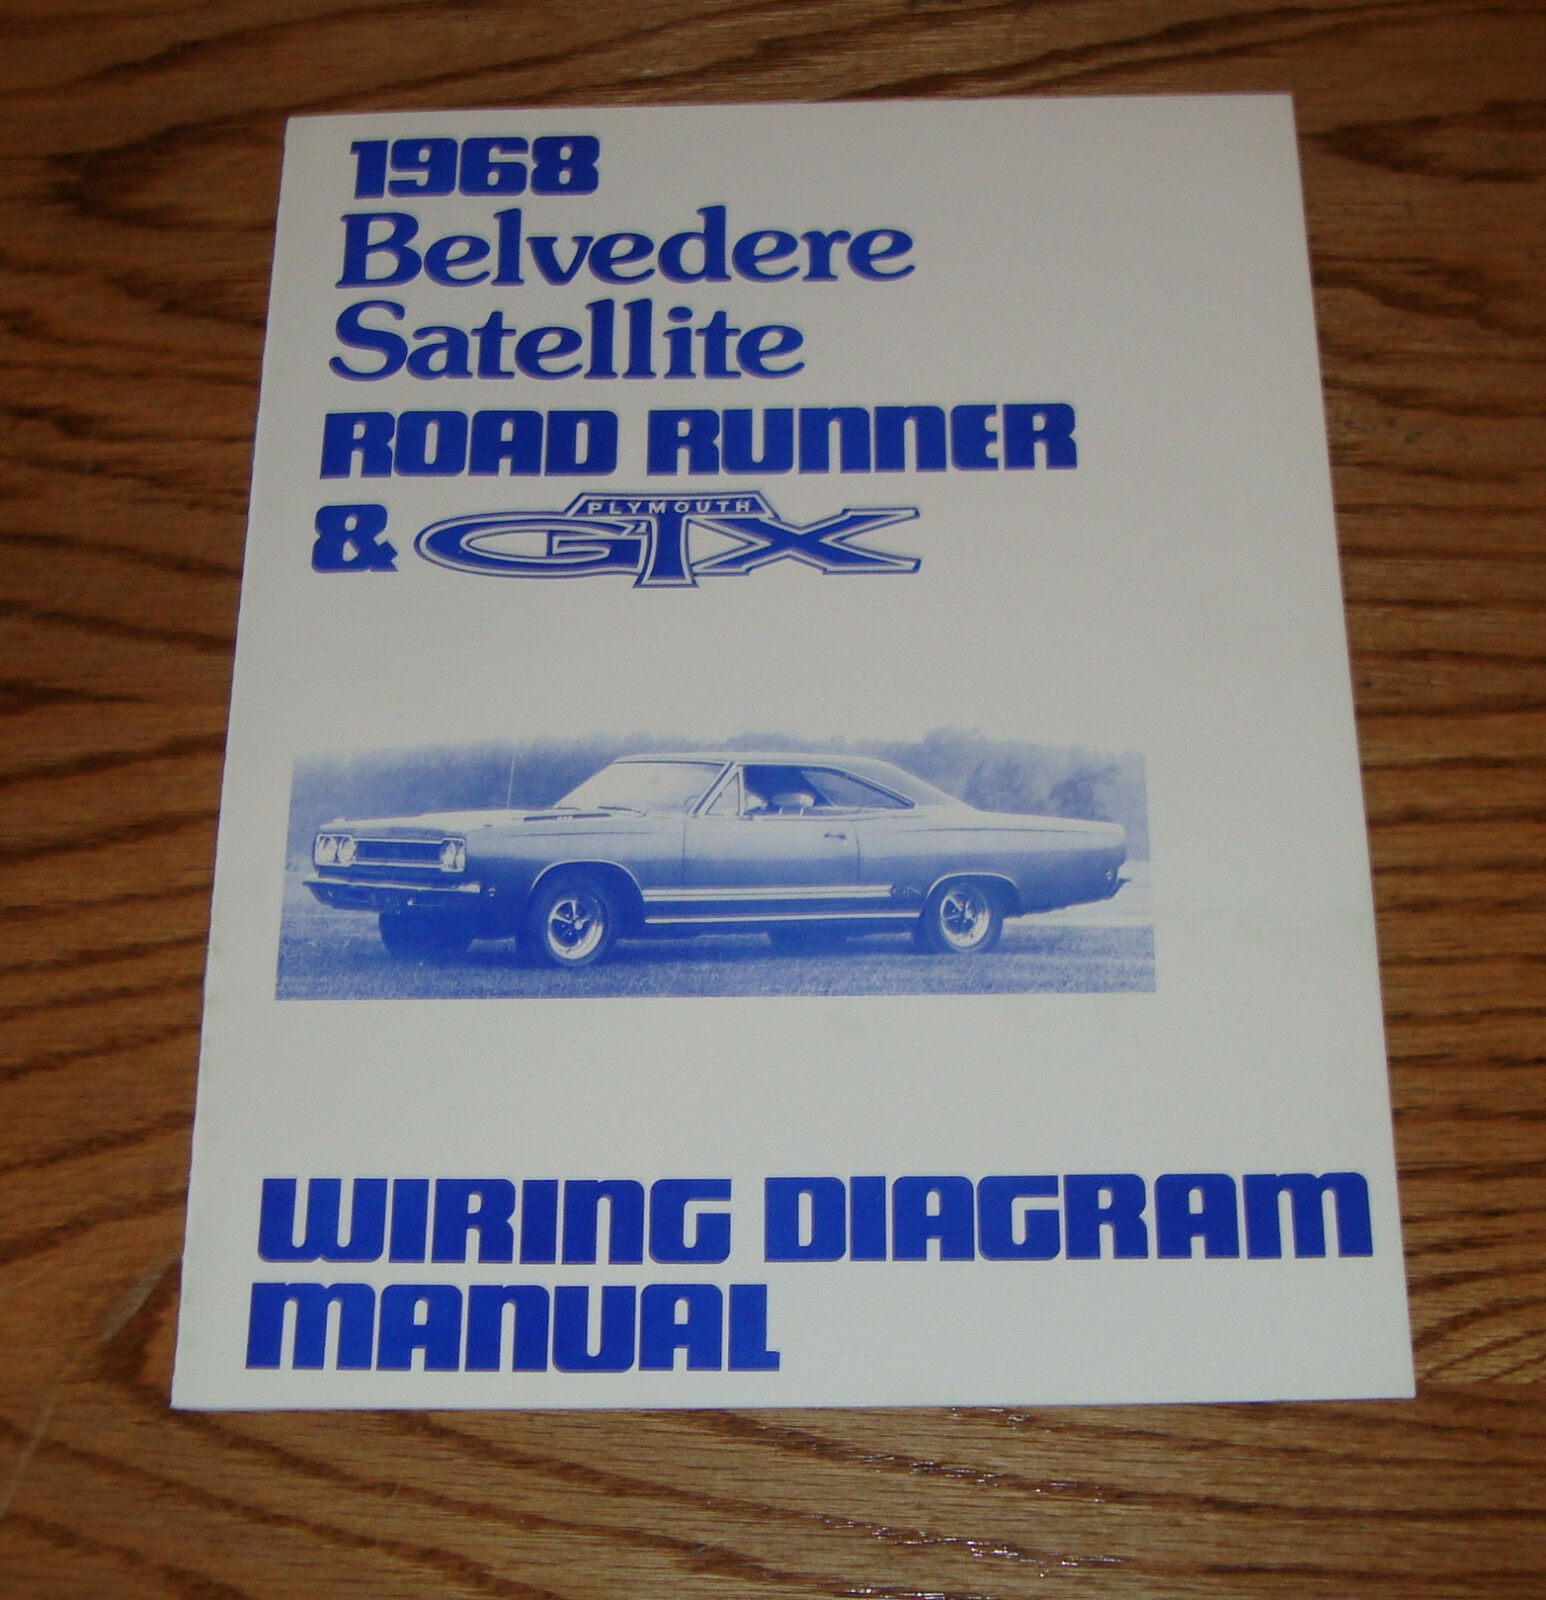 hight resolution of 1968 plymouth belvedere satellite road runner gtx wiring diagram manual 68 1 of 1only 2